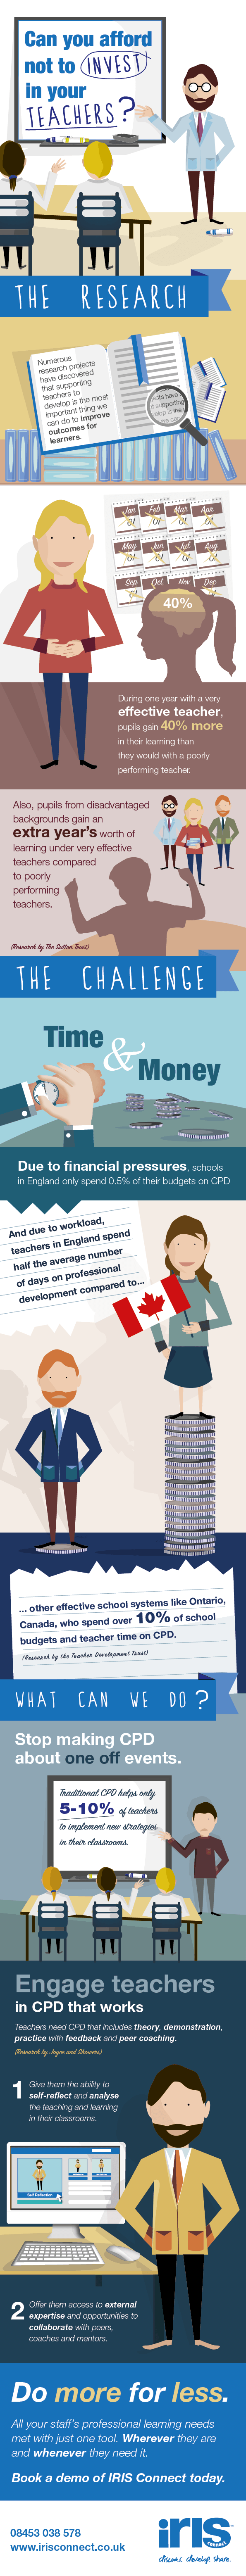 Can you afford not to invest in your teachers? Infographic